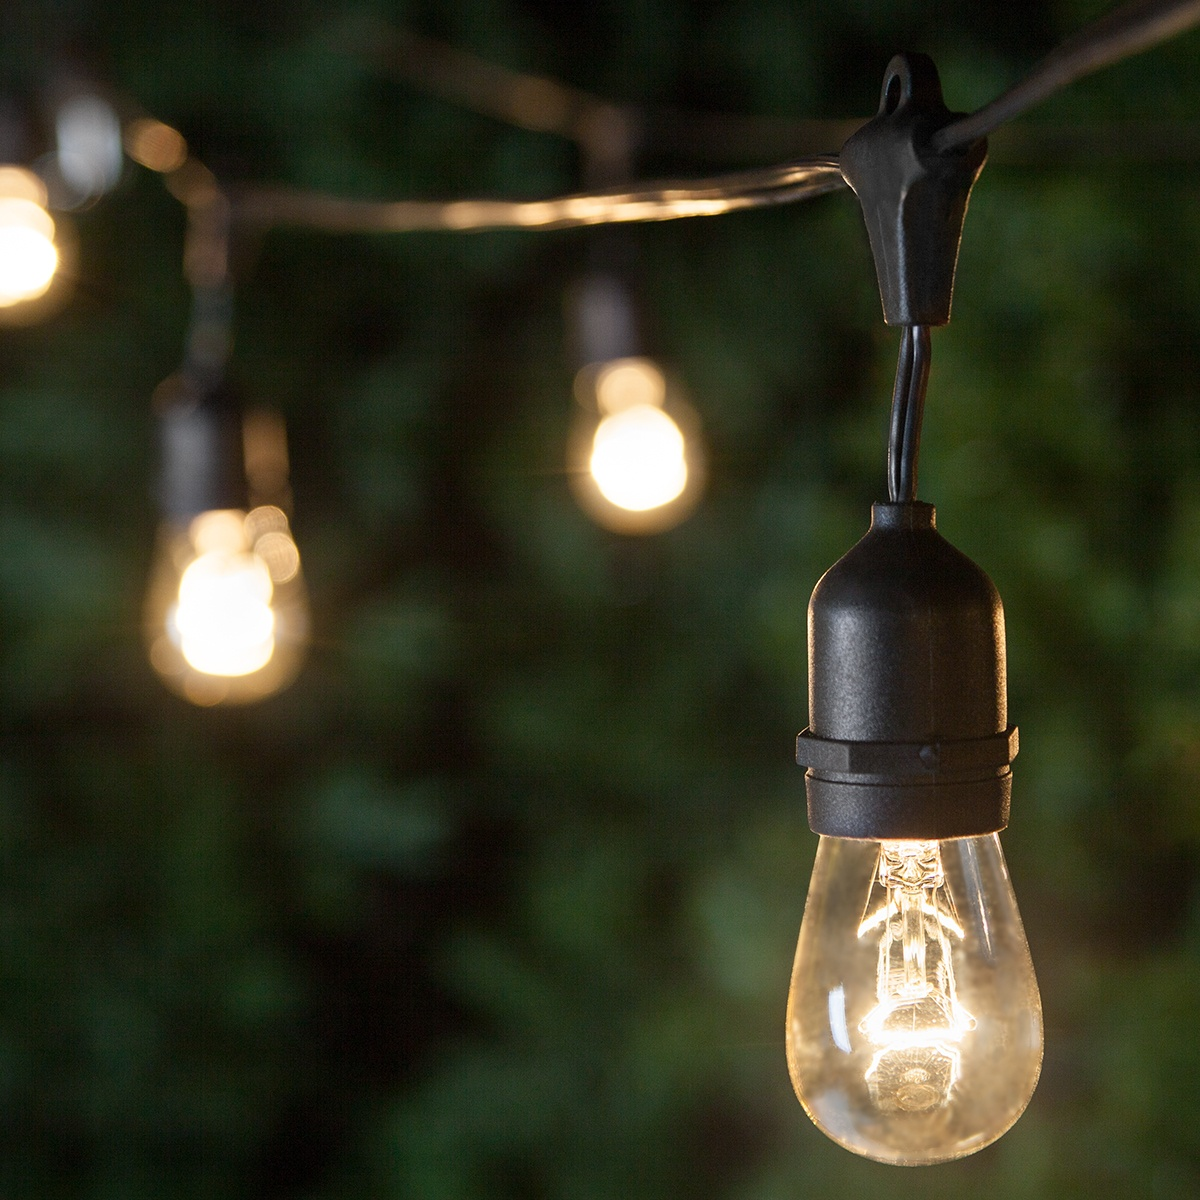 Outdoor String Lights Large Bulbs : Patio Lights - Commercial Clear Patio String Lights, 24 S14 E26 Bulbs Black Wire